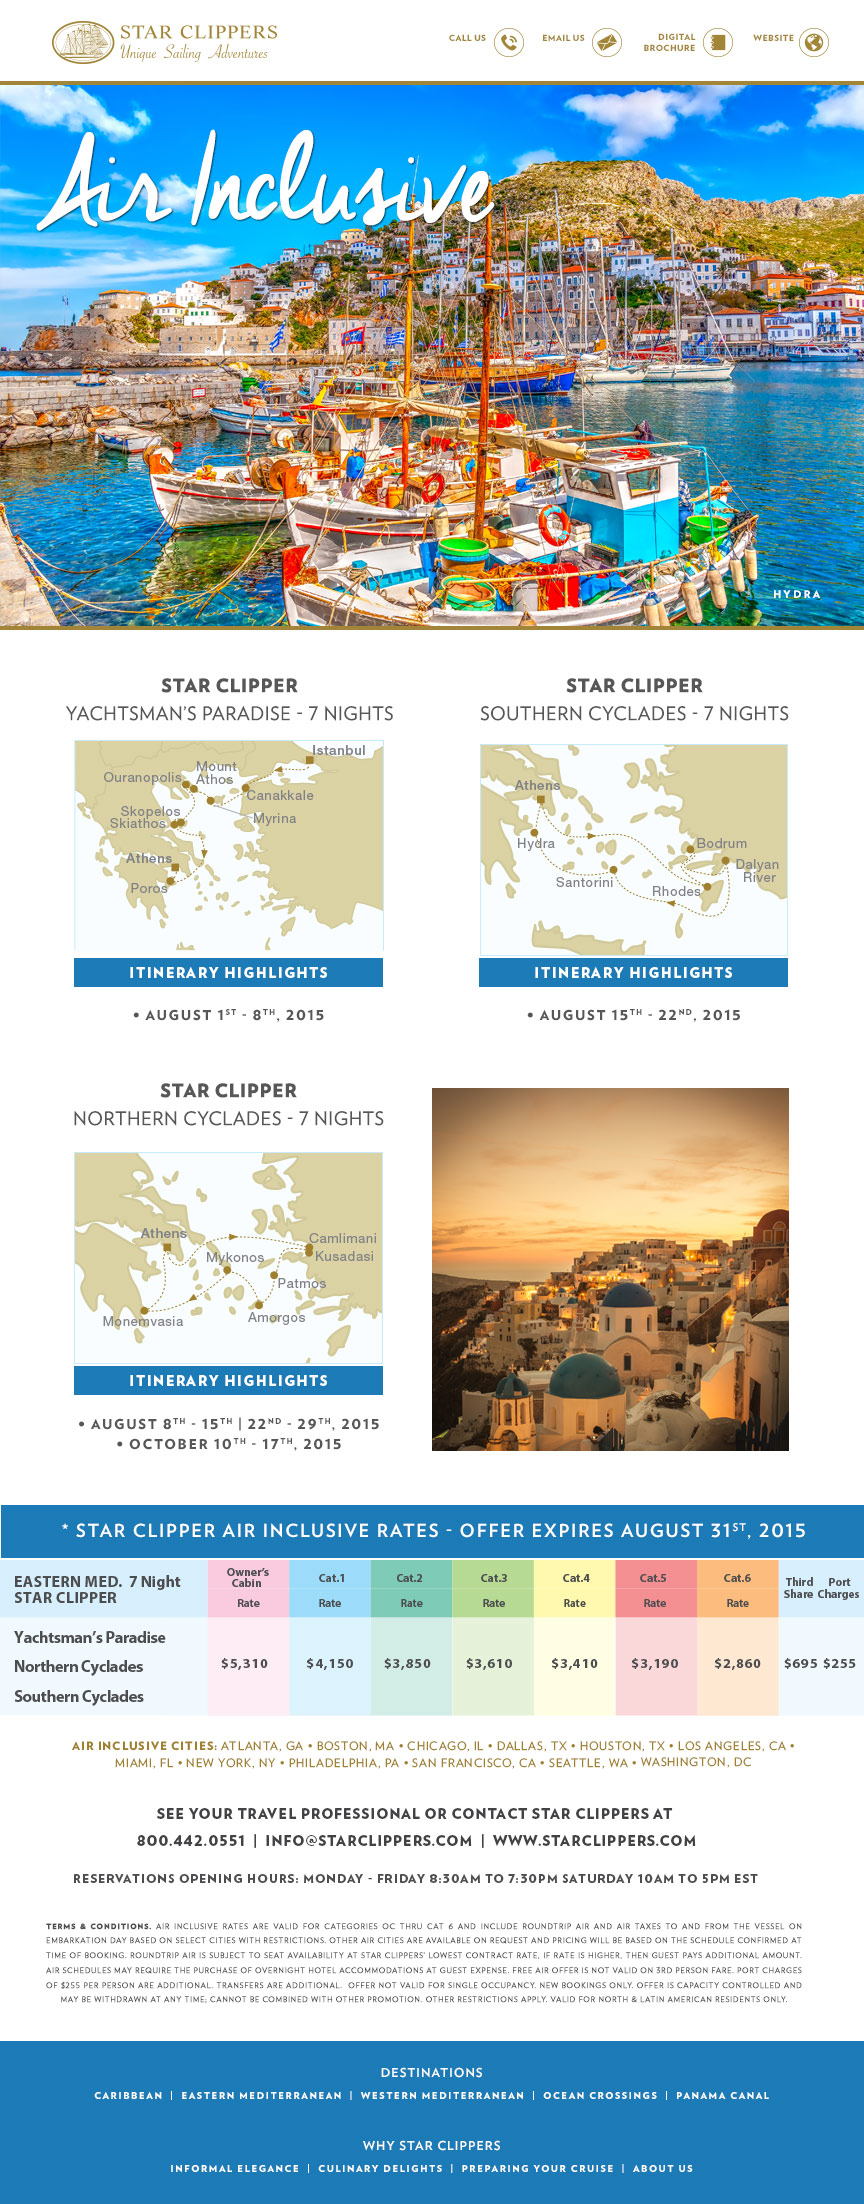 Star Cippers Cruise Packages cruise packages Star Clippers European Cruise Packages star clippers cruise packages 23